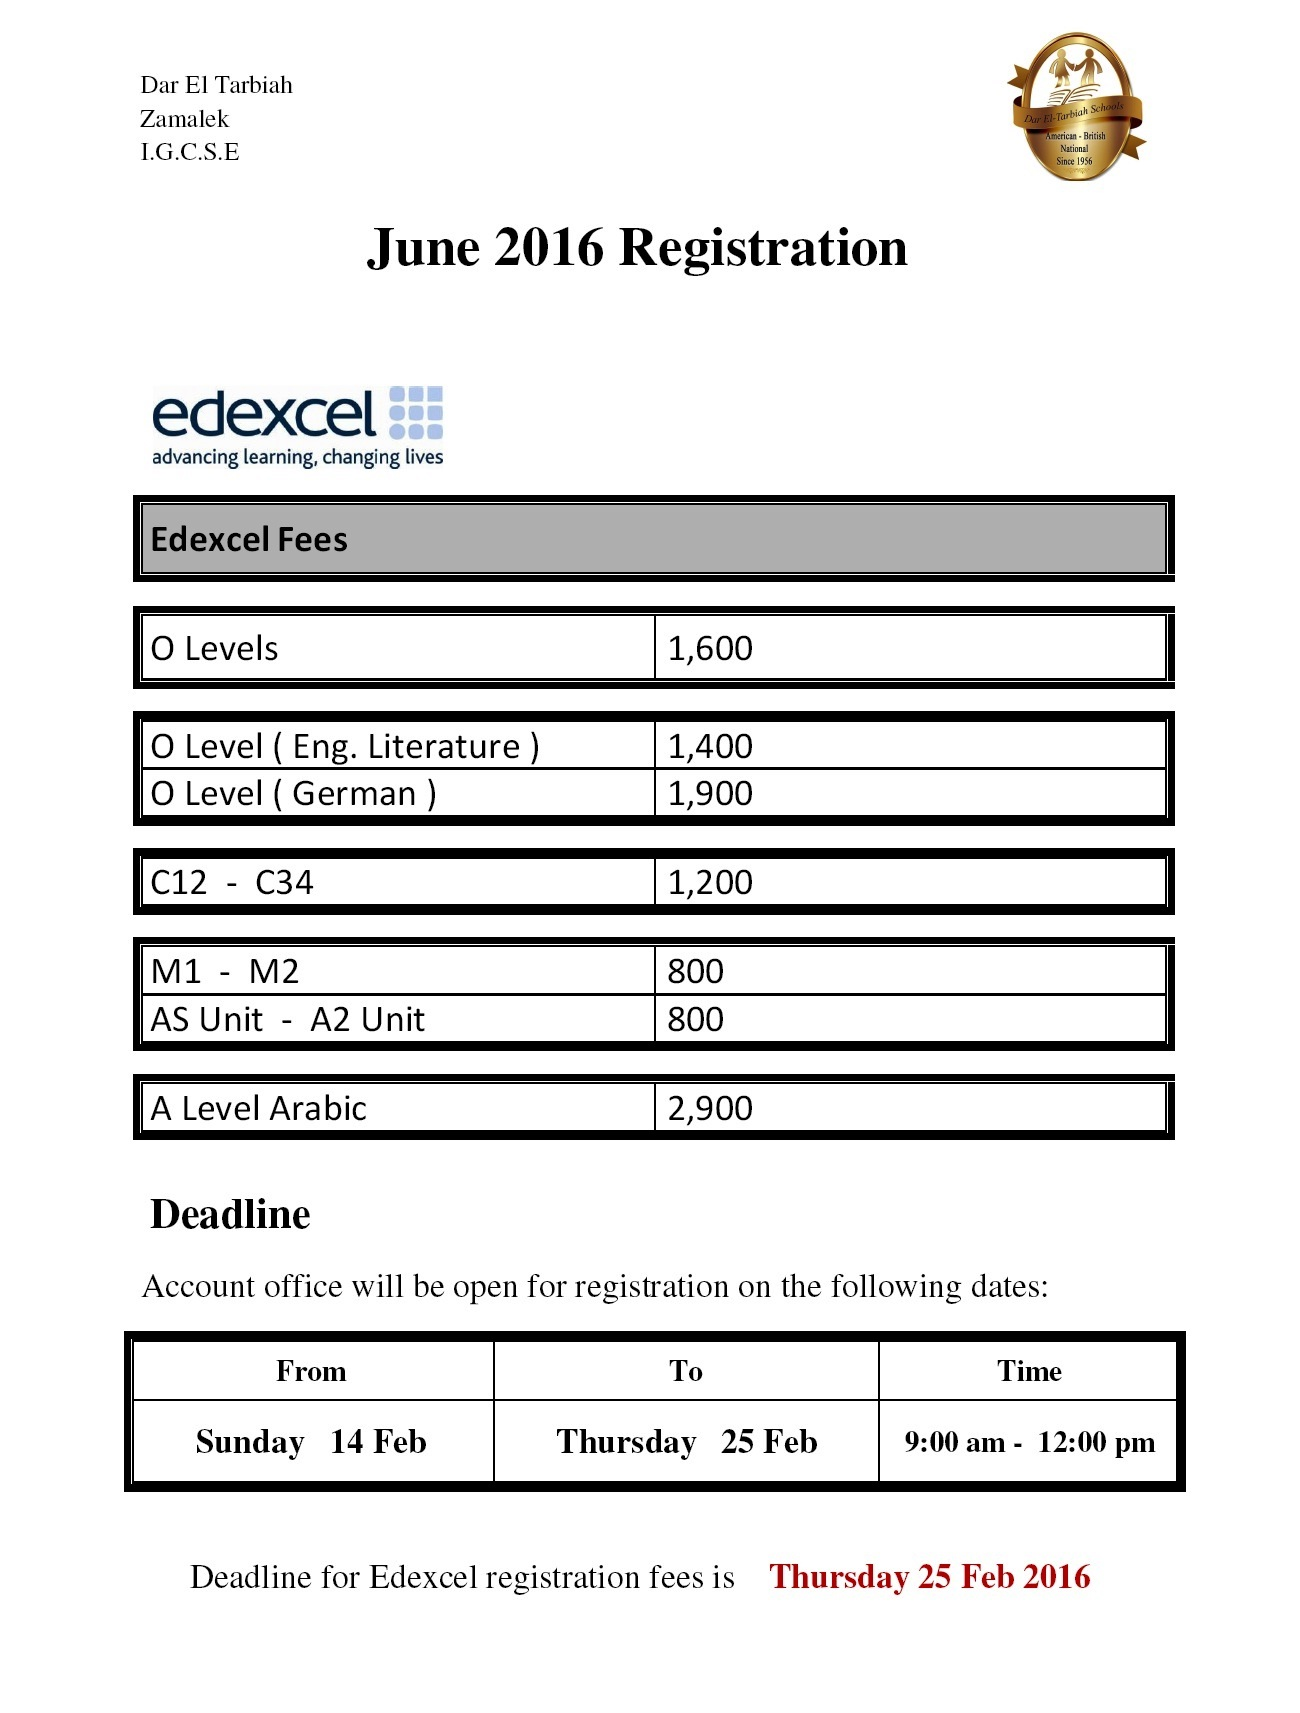 IG Zamalek - June 2016 Registration Fees ED